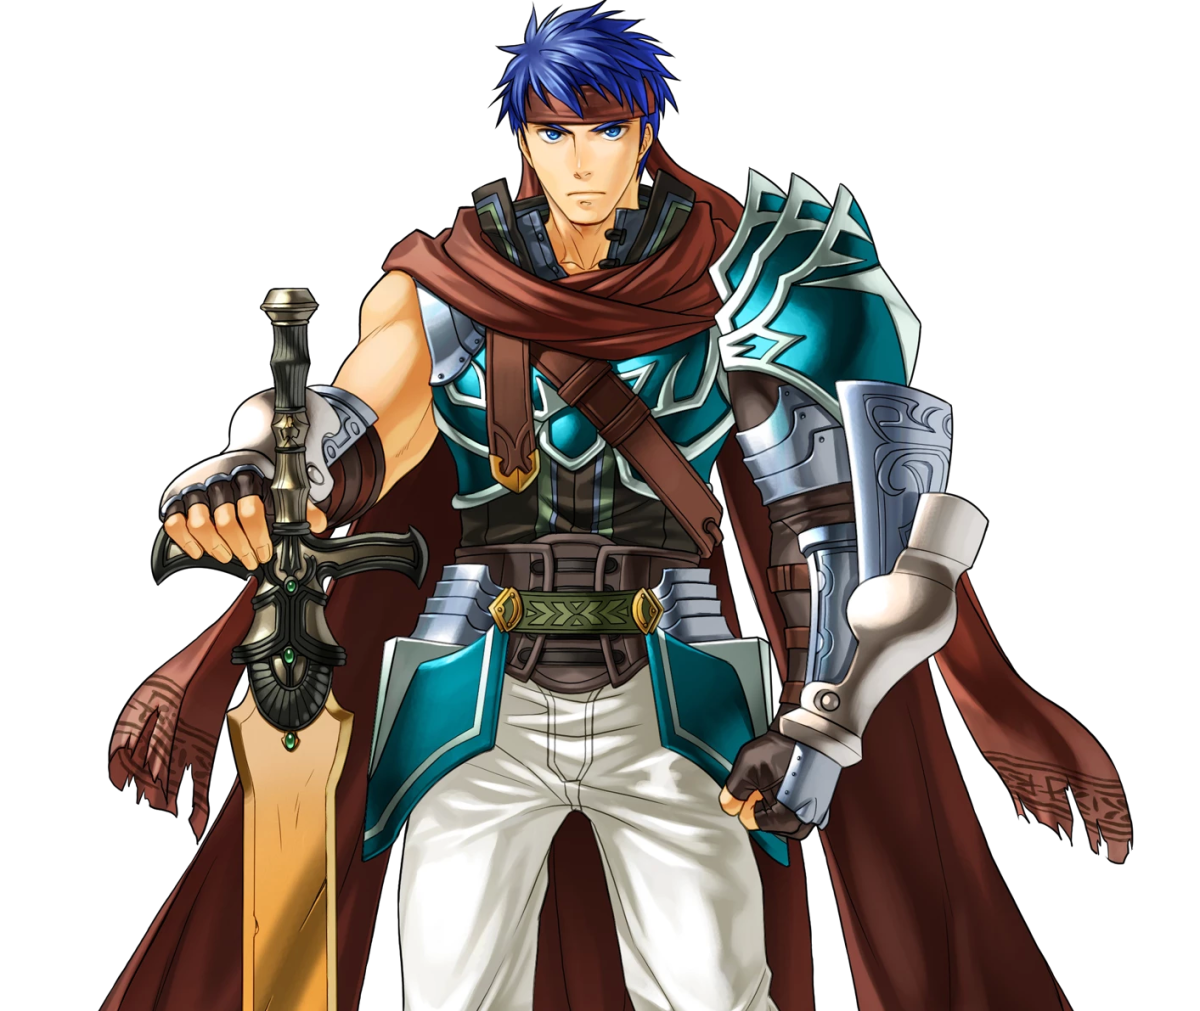 Ike in Fire Emblem Heroes